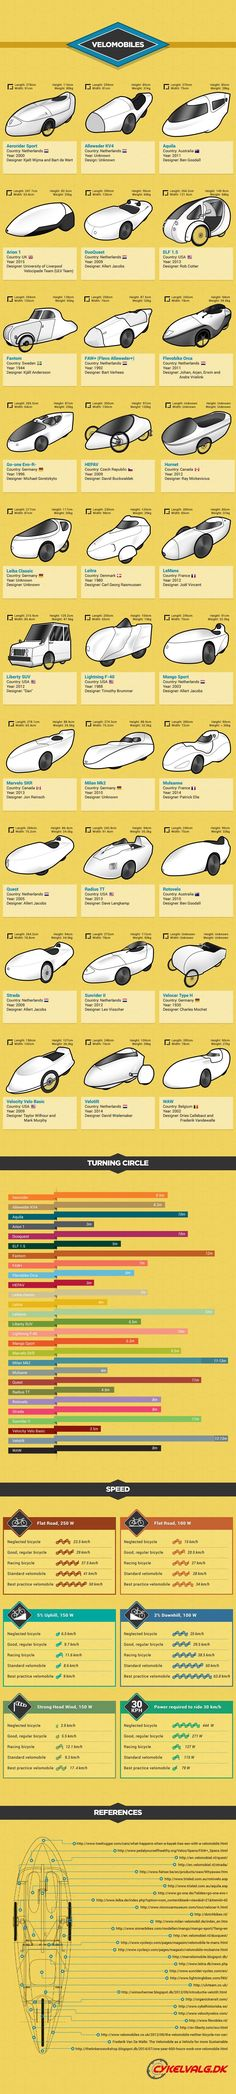 27 Classic Velomobiles from 1930 to 2015 #infographic #History #Transportation…